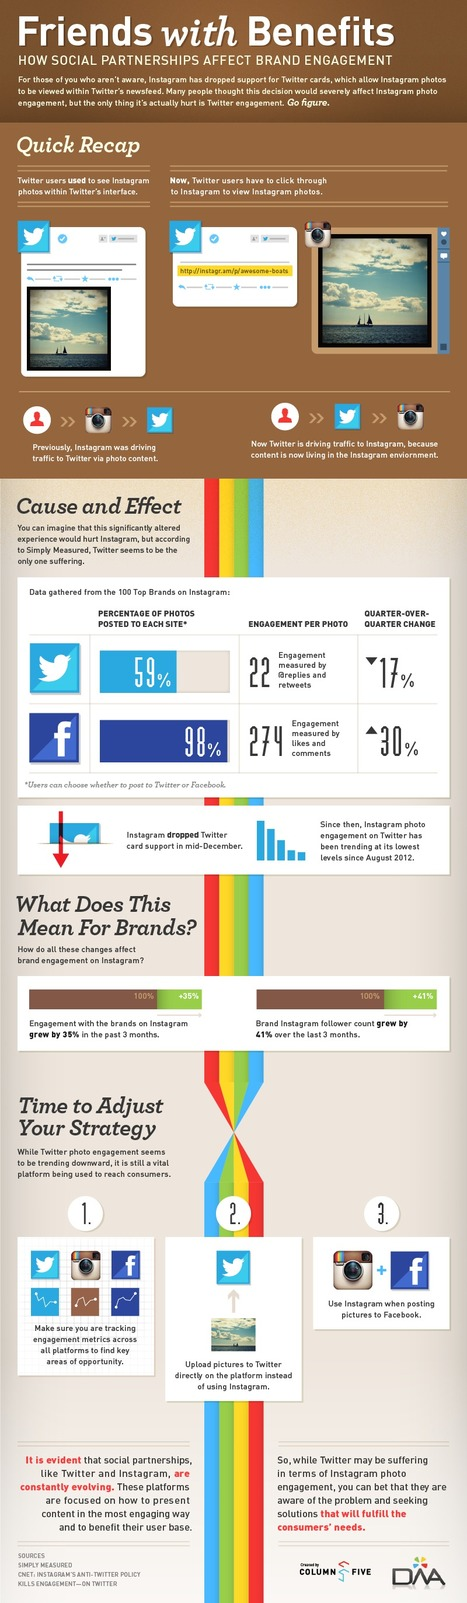 STUDY: Brand Engagement On Instagram Has Grown 35% Since Twitter Split [INFOGRAPHIC] - AllTwitter | Better know and better use Social Media today (facebook, twitter...) | Scoop.it